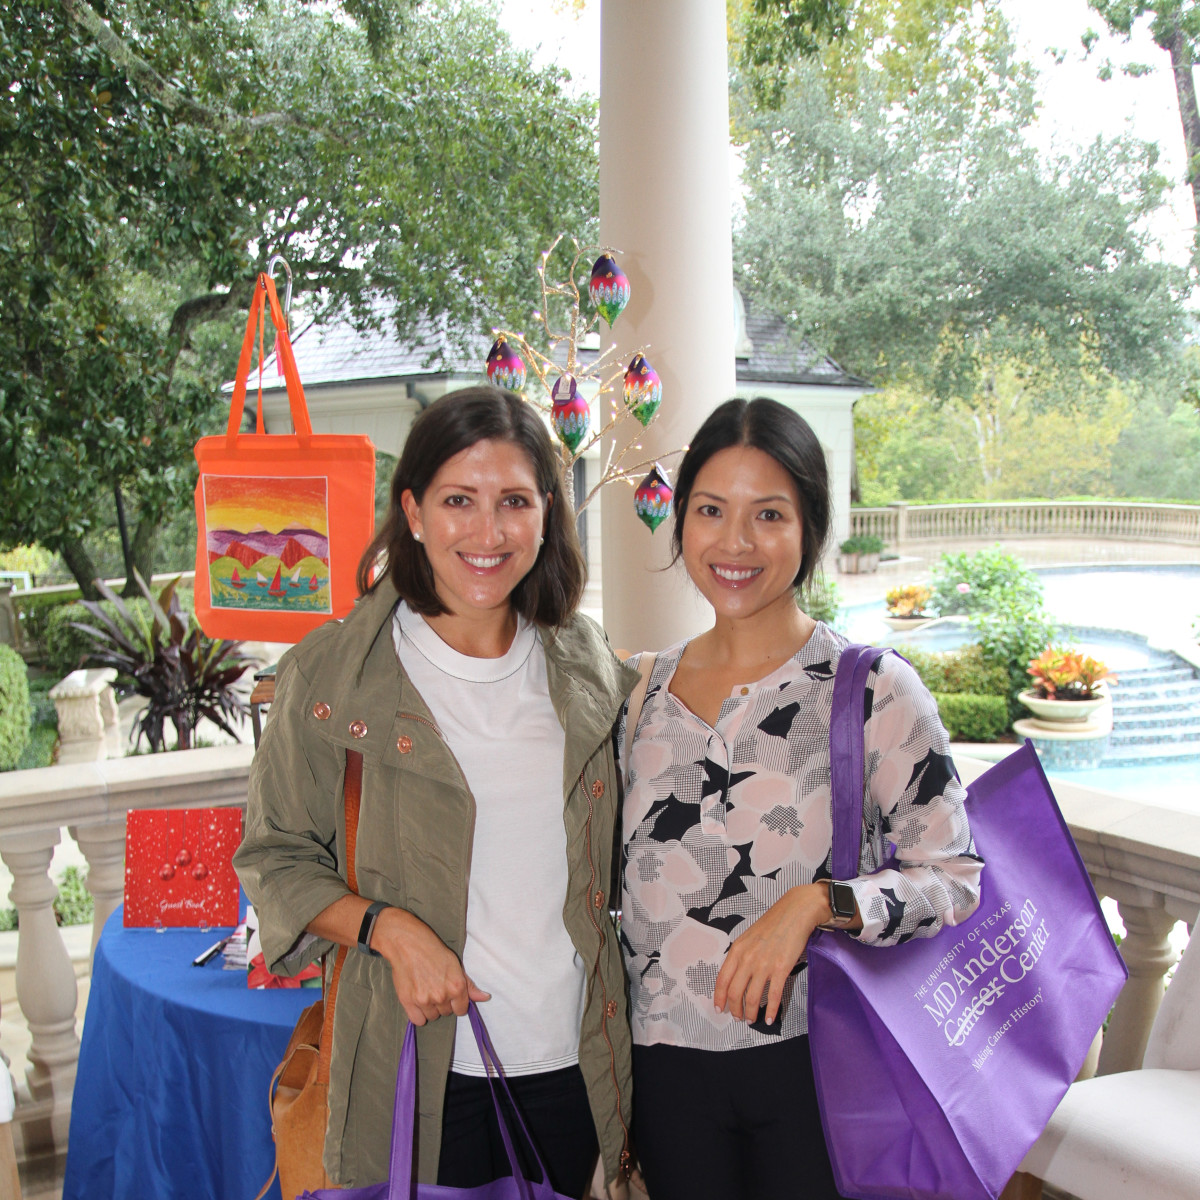 Paige Fertitta Children's Art Project trunk show MD Anderson Caroline Brown, Nancy Bihlmaier